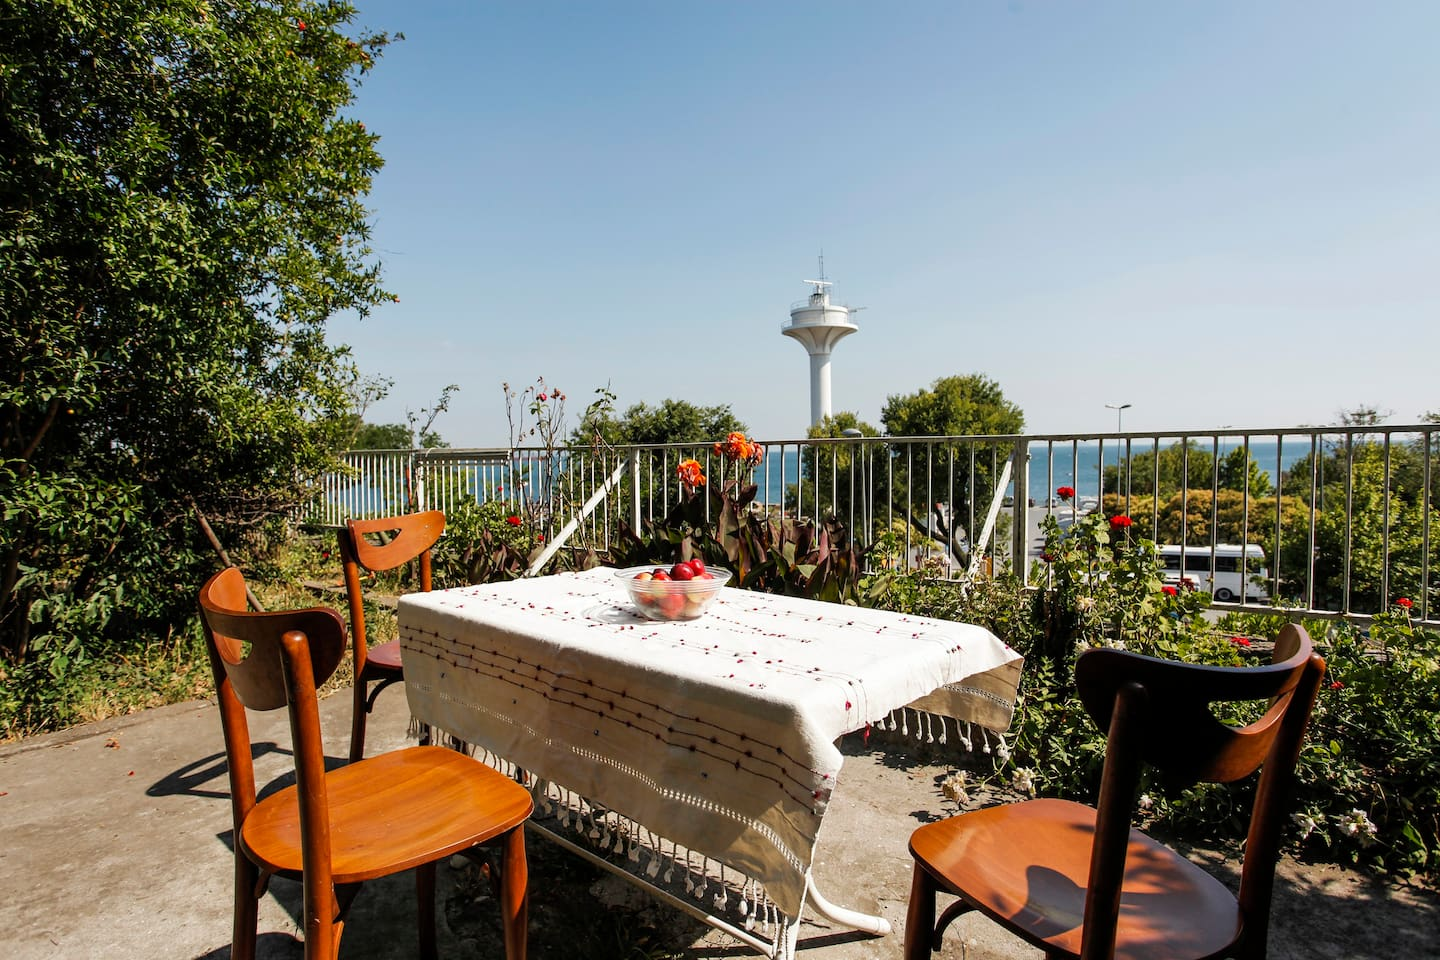 Enjoy the view of Bosphorus and the Marmara sea.